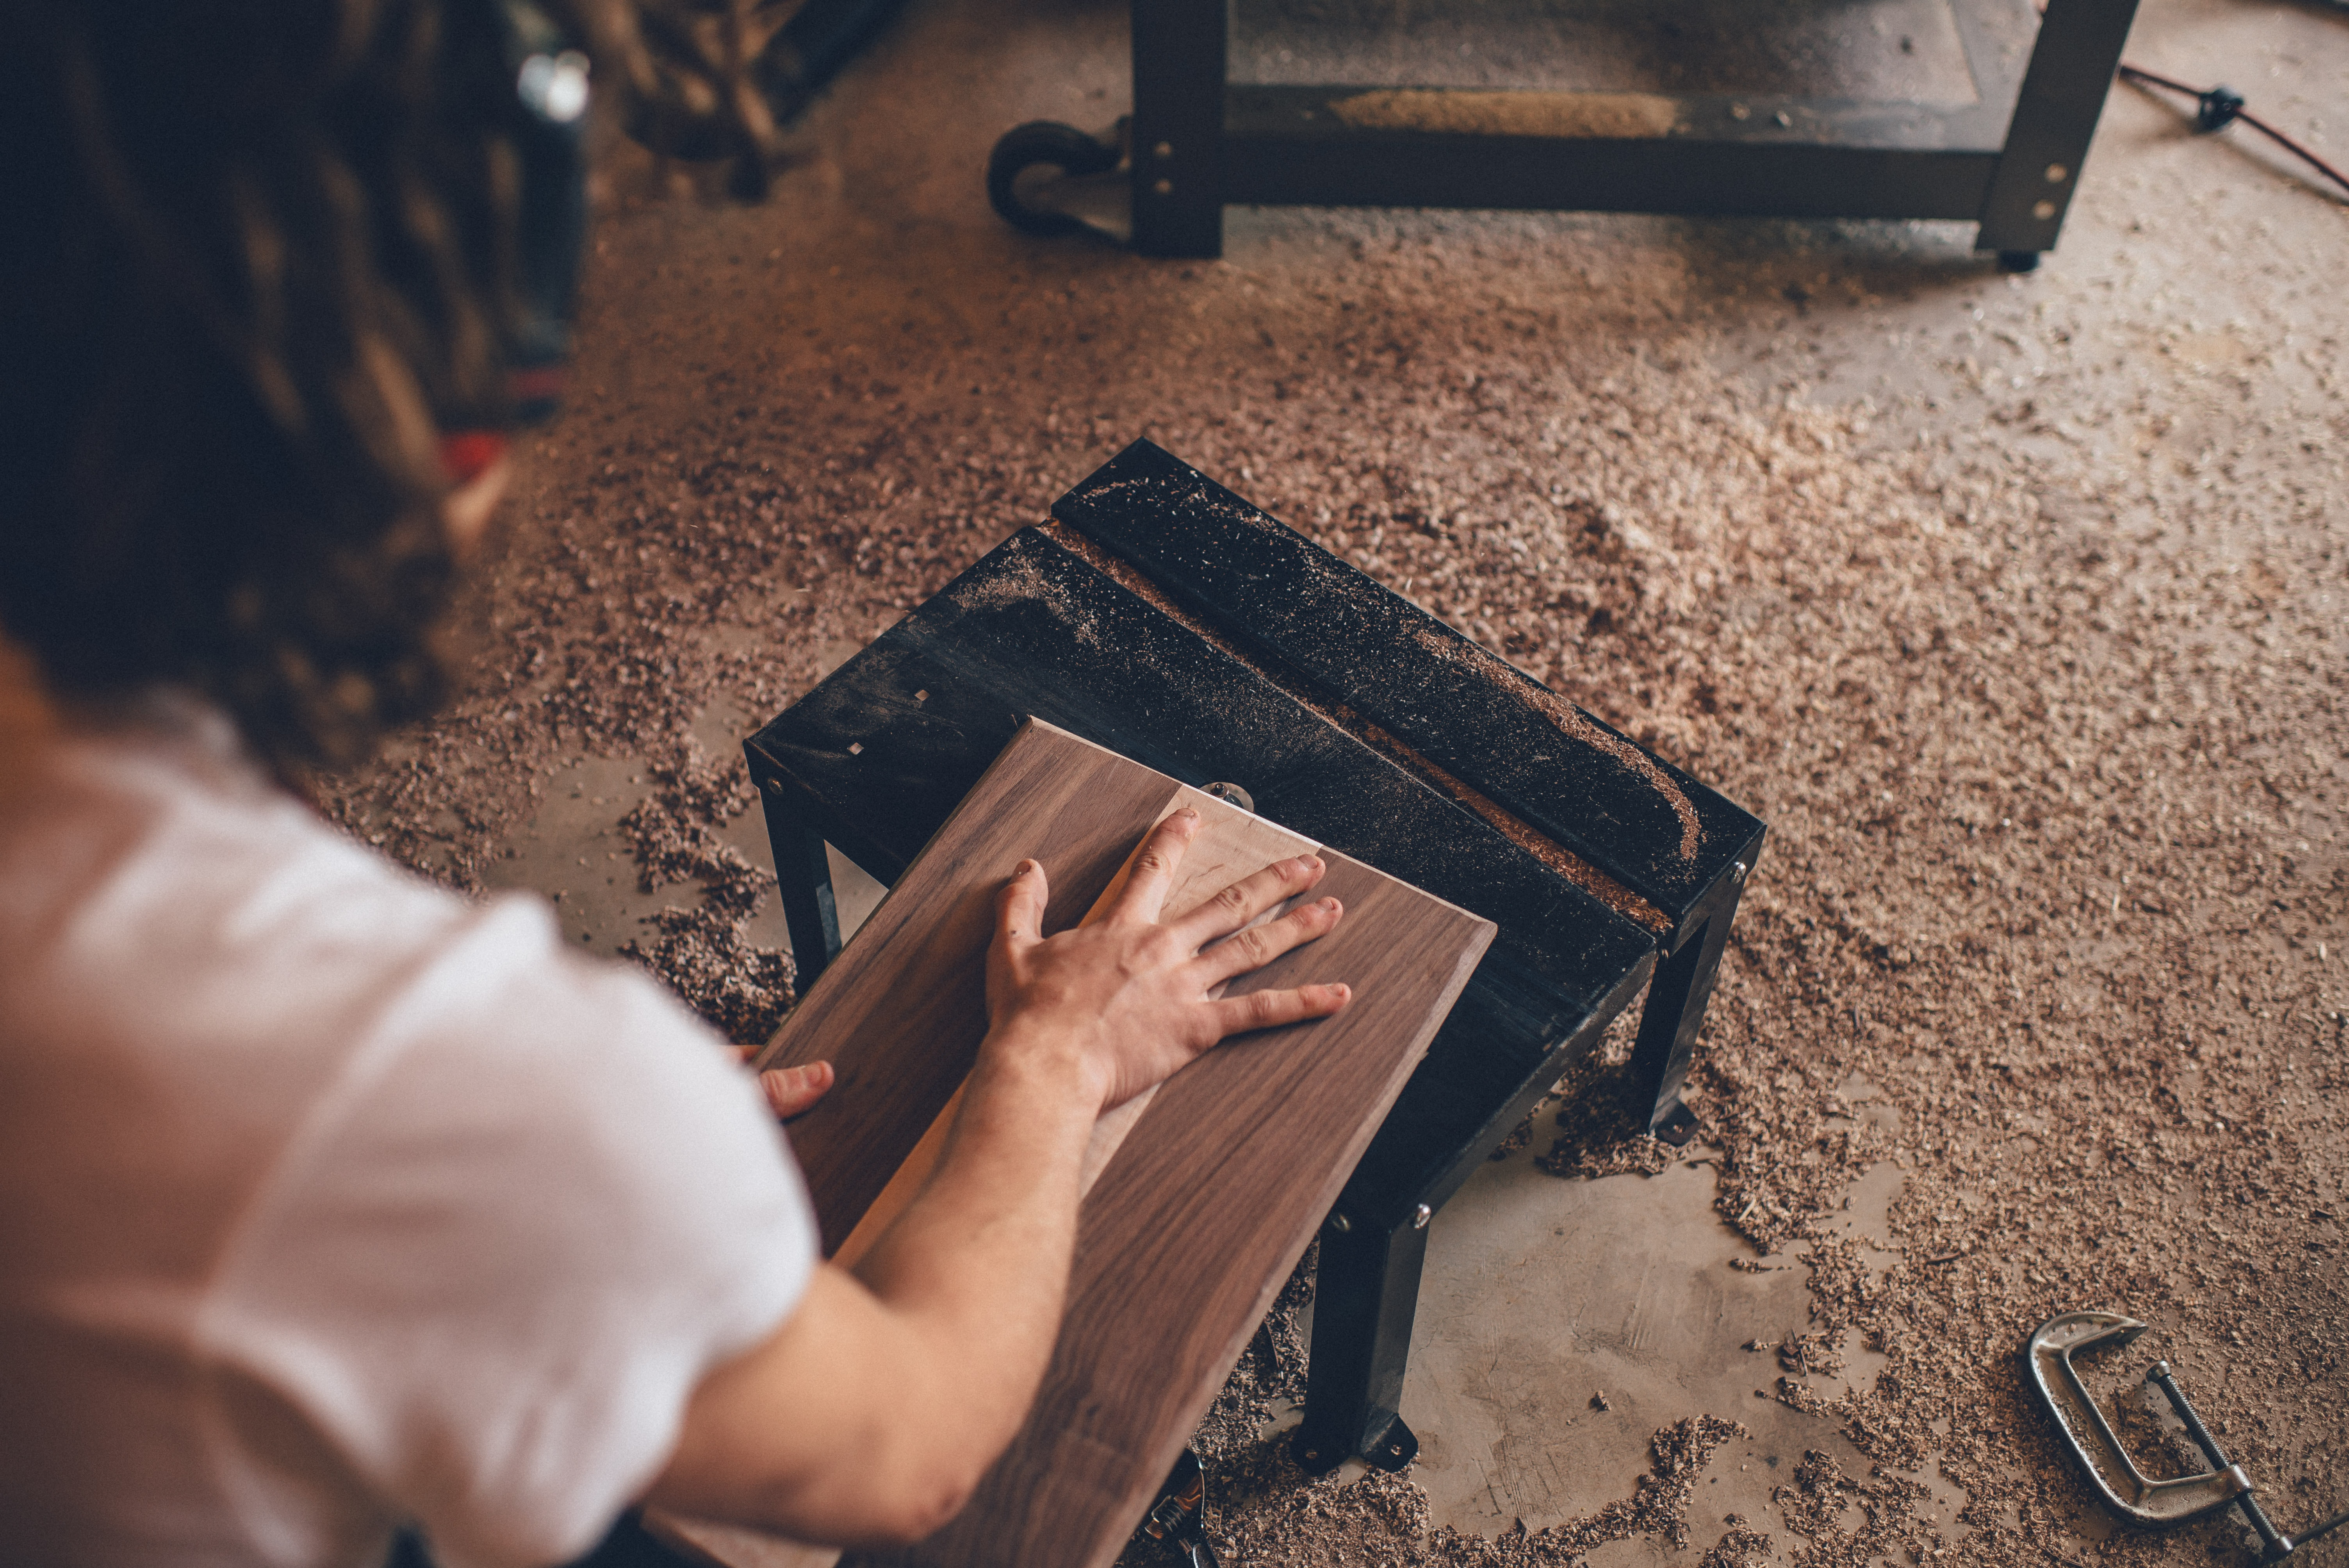 A Story About a Carpenter …